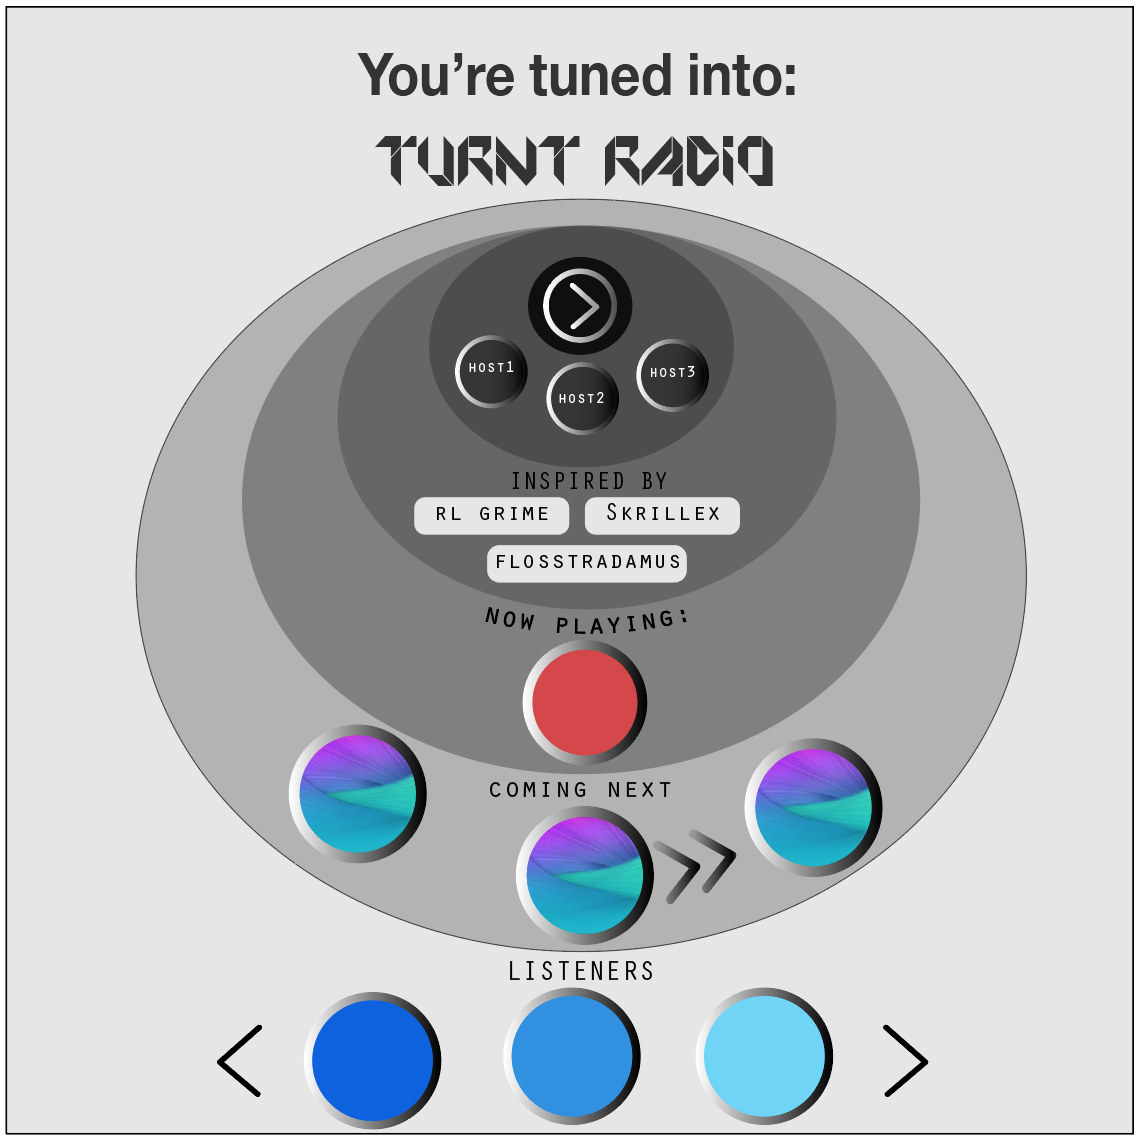 Artist-hosted Radio - Combination of curated music, listener suggestions, and conversations between hosts content; like a radio show and podcast focused on each respective music genre and subculture